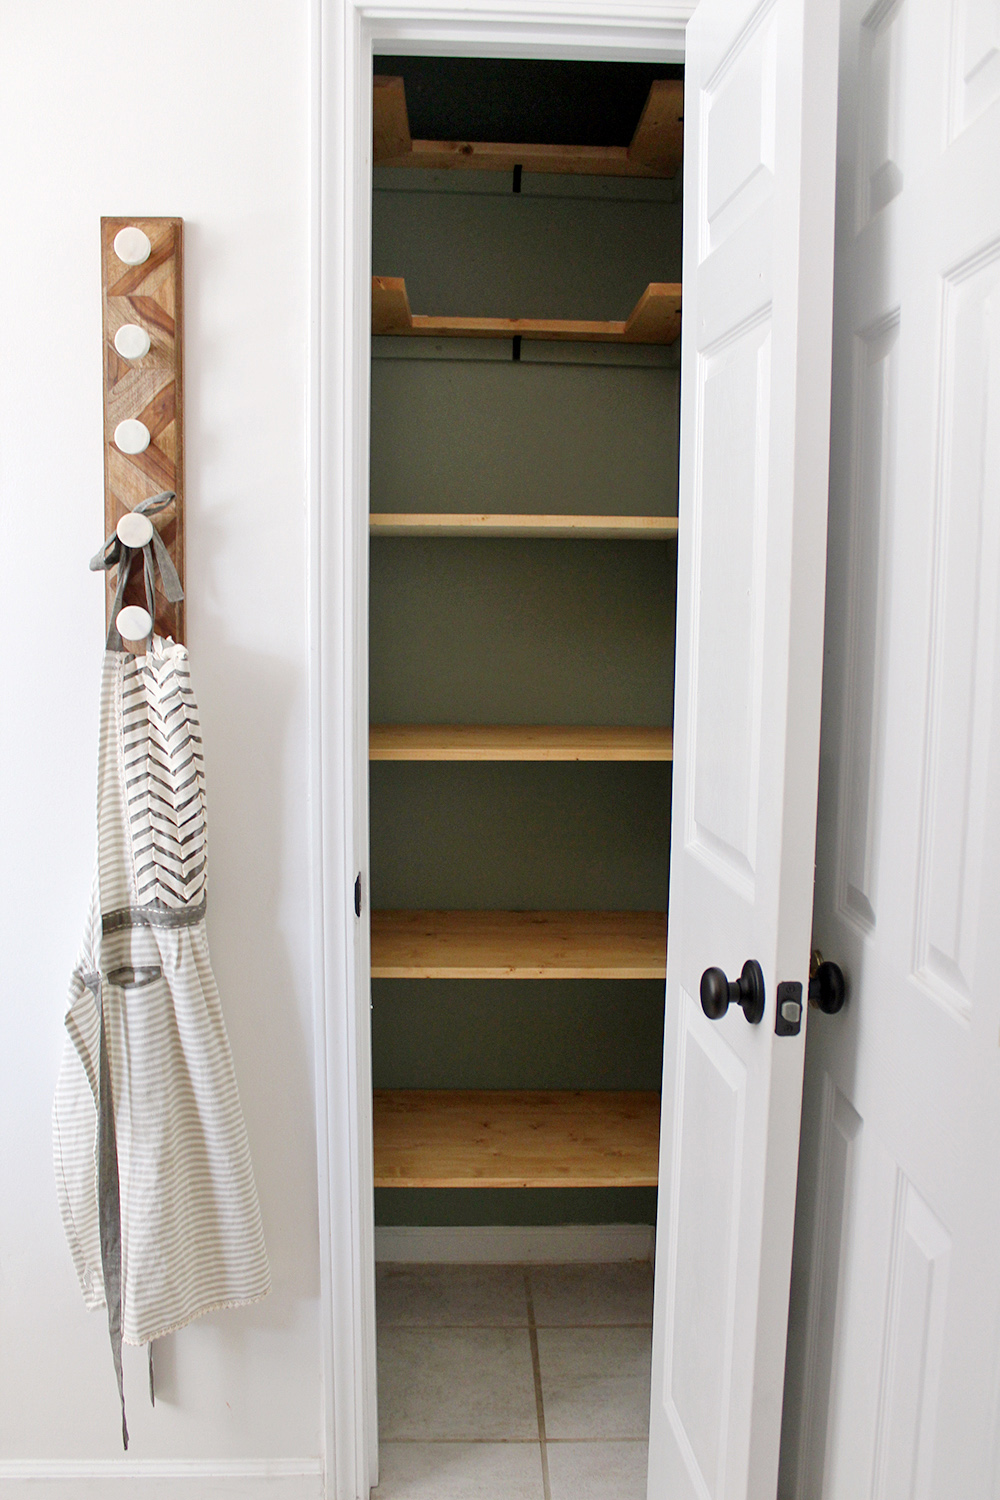 learn how to makeover your small kitchen pantry with this complete supply list & pictures